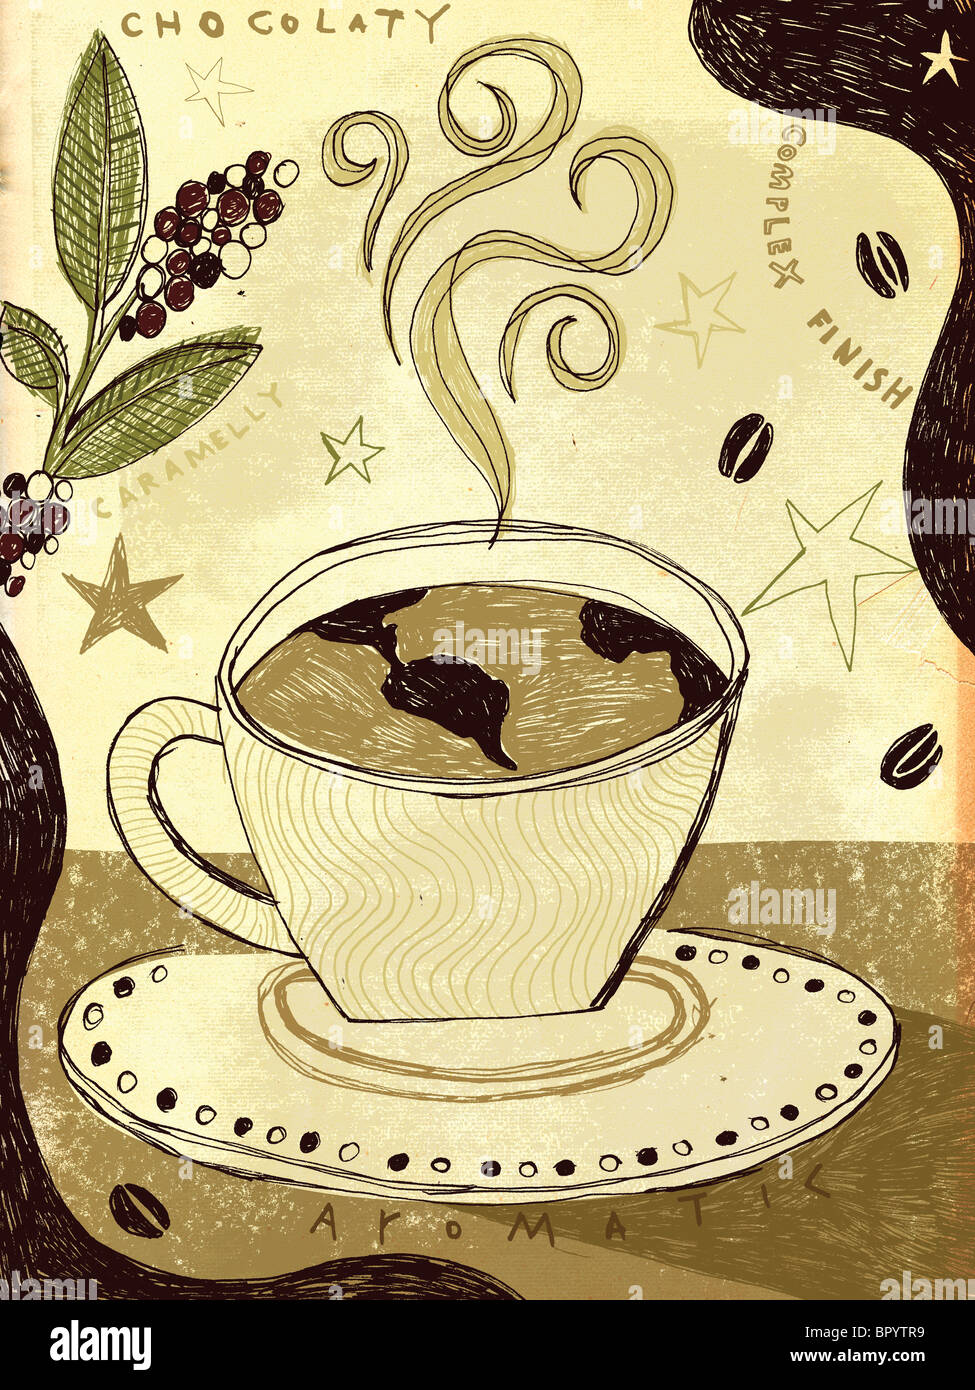 Steaming hot coffee with a globe in it - Stock Image